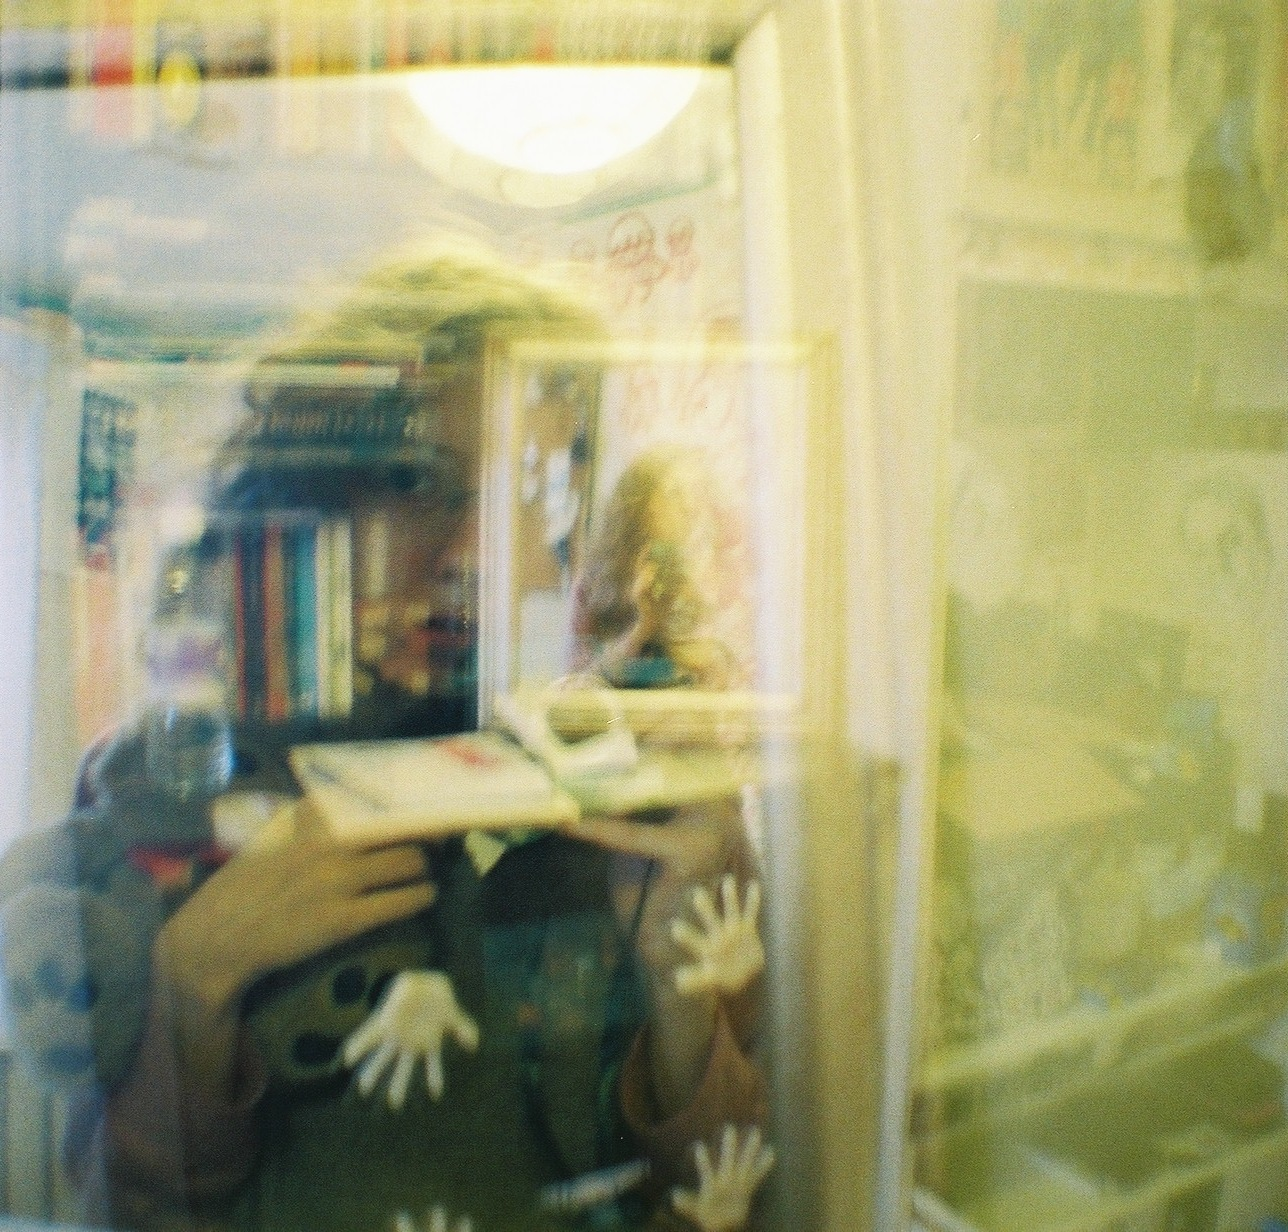 Double exposure showing a young woman appearing twice in a mirror from different distances.